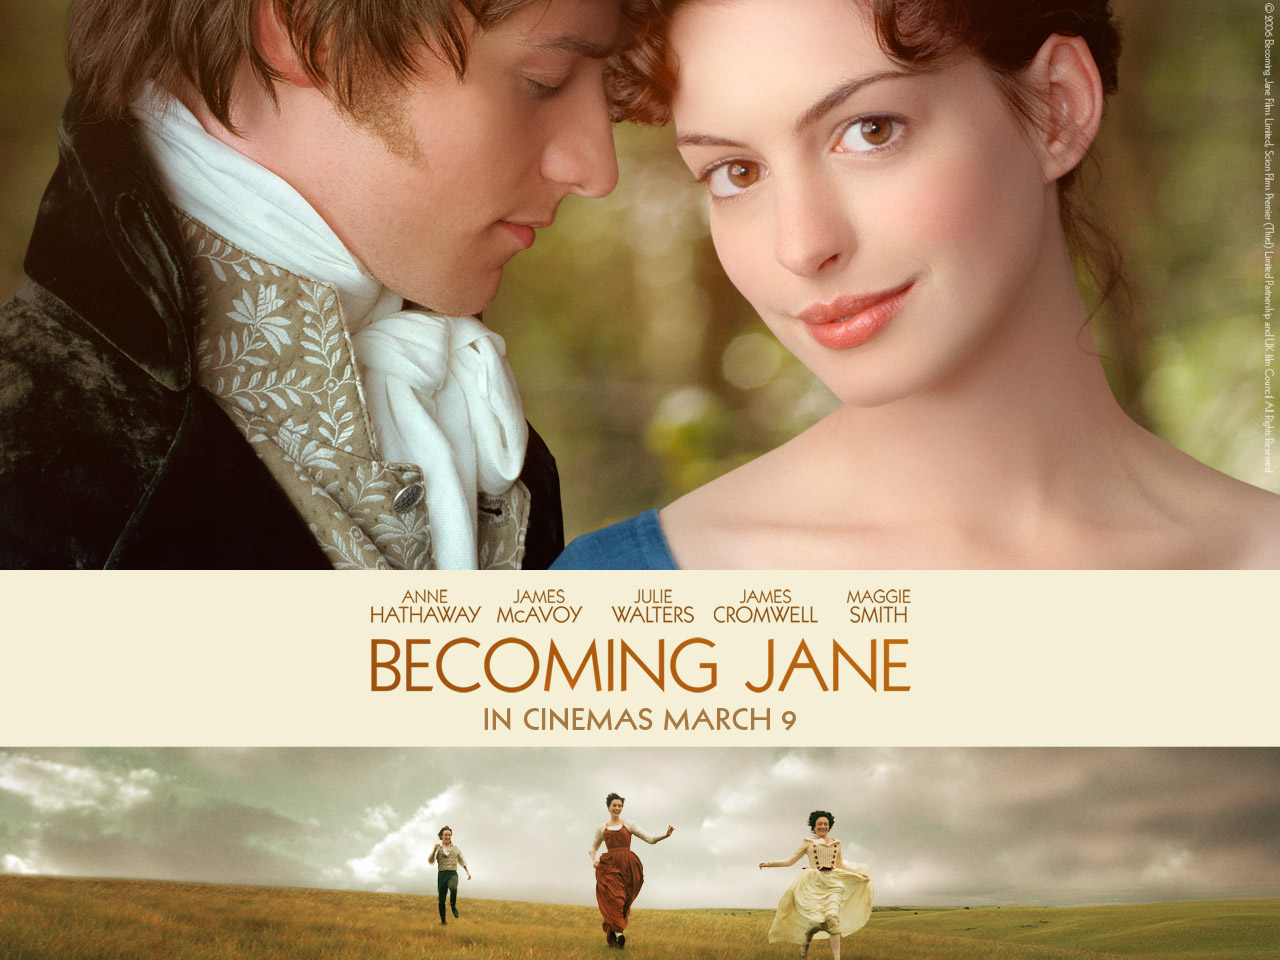 http://4.bp.blogspot.com/_FGf8SnGm4Oo/SxLEyOa3rgI/AAAAAAAAAfk/-Cng_B34OKM/s1600/Becoming-Jane-james-mcavoy-240918_1280_960.jpg